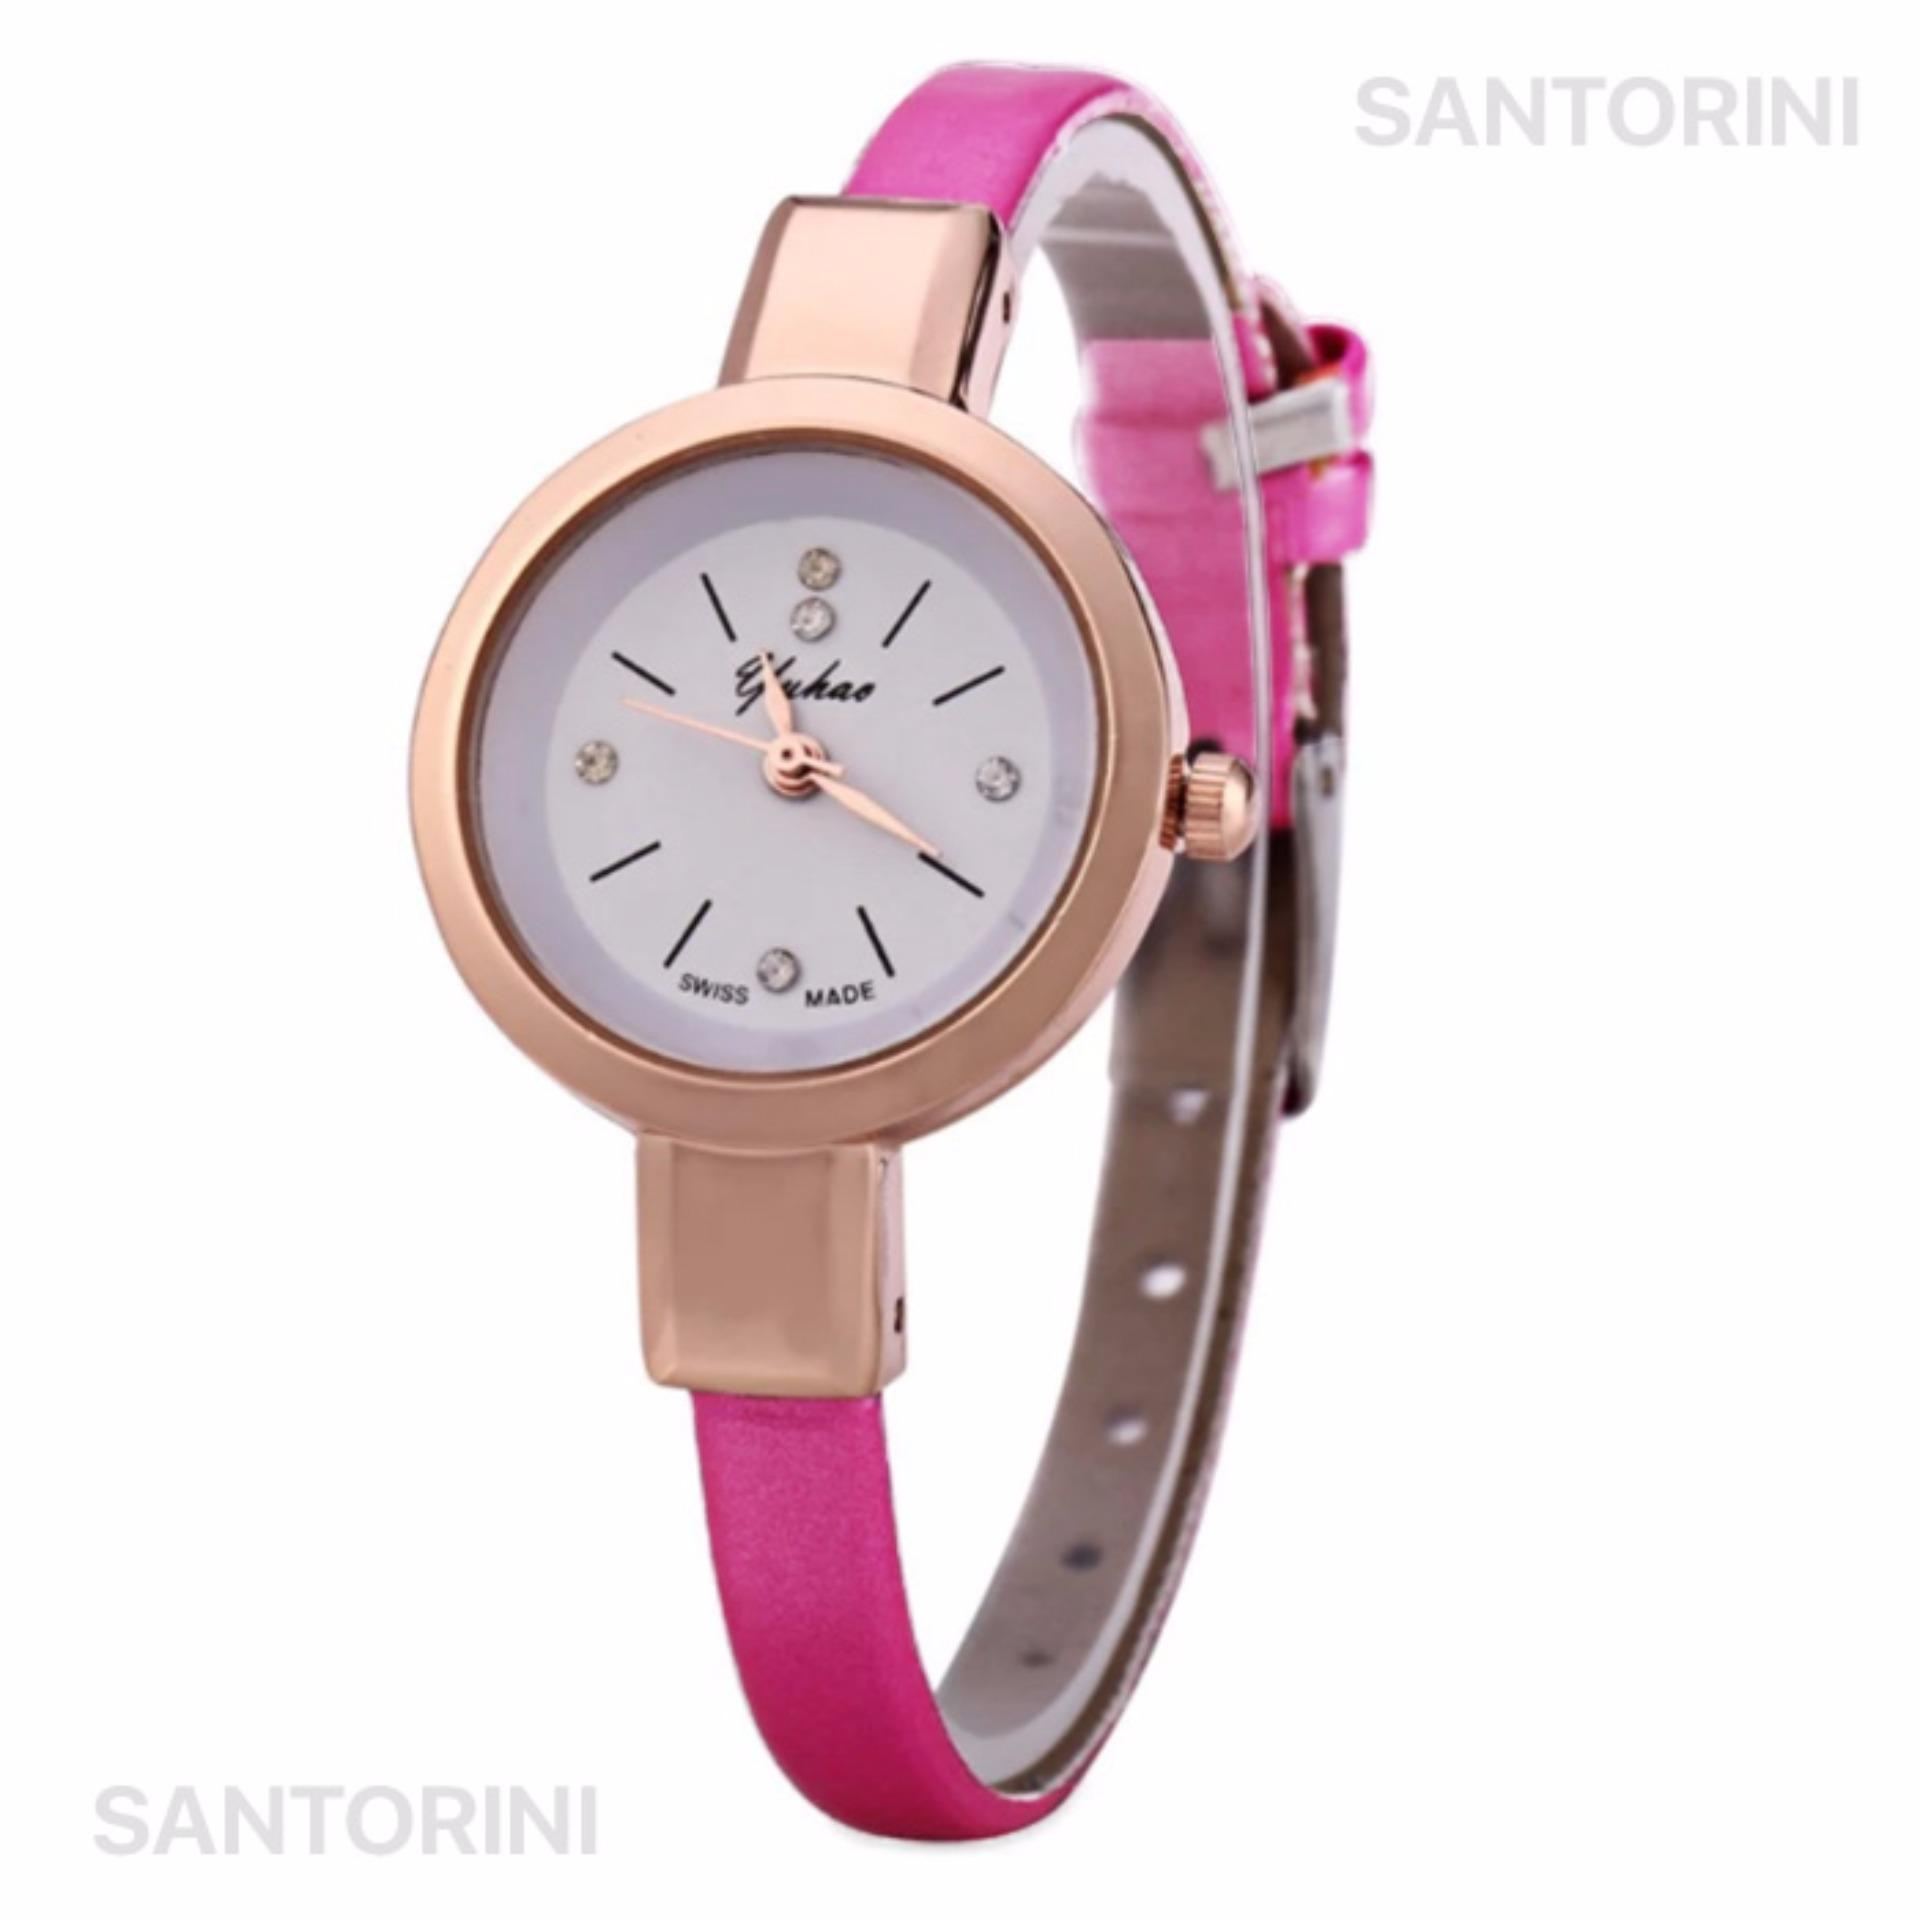 YUHAO Jam Tangan Kulit Fashion Analog Wanita Diamon Style Women Leather Strap Watch - PINK